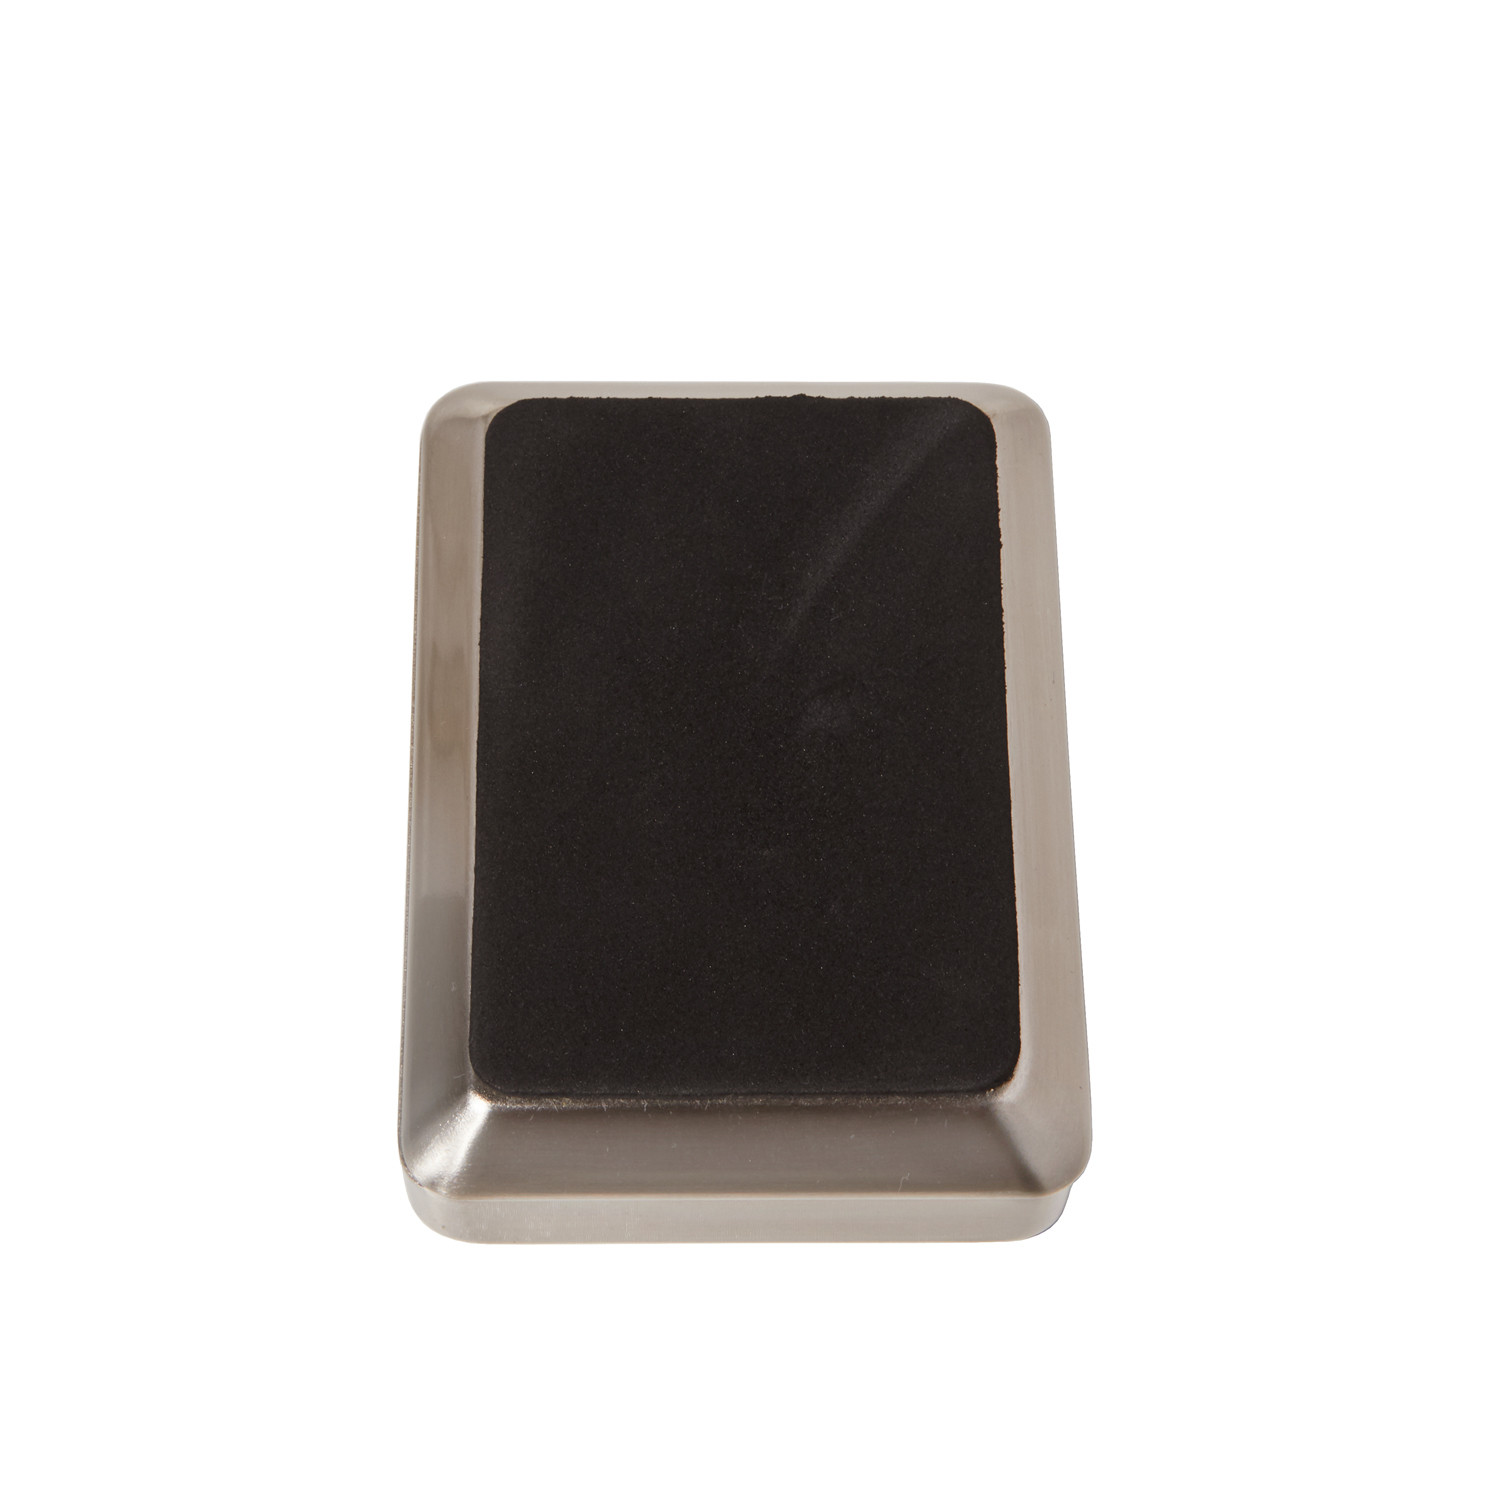 Sleek Nickel Soap Dish